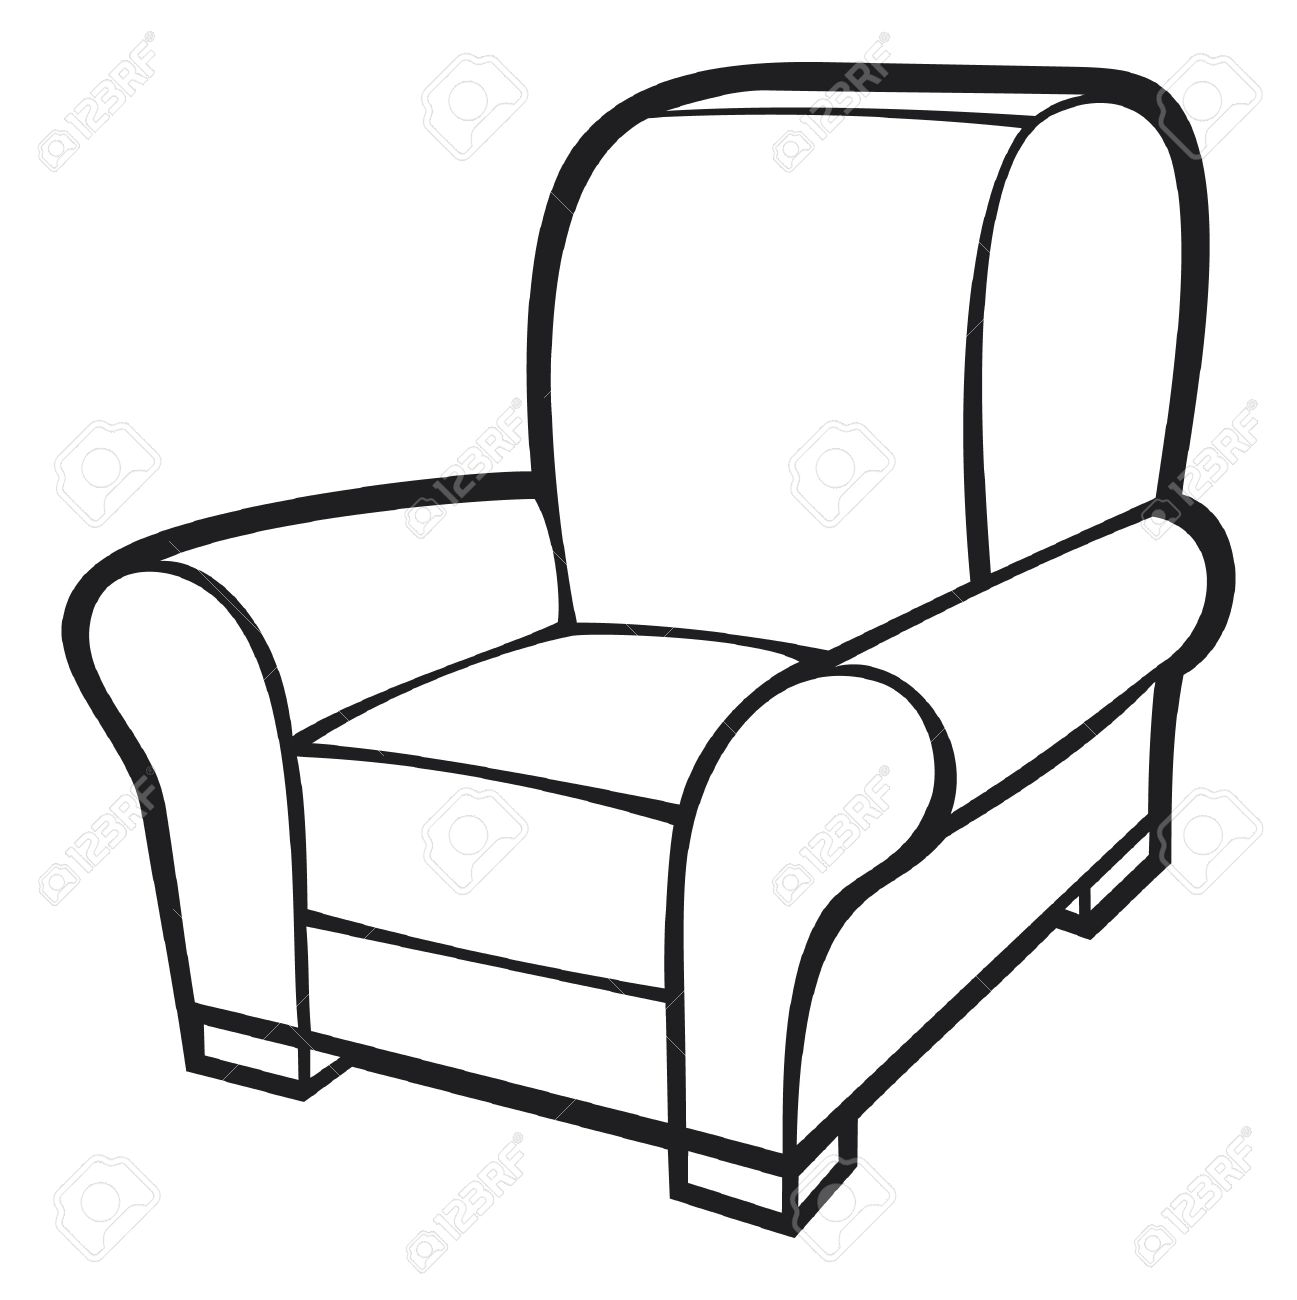 Furniture clipart line art. Black and white free